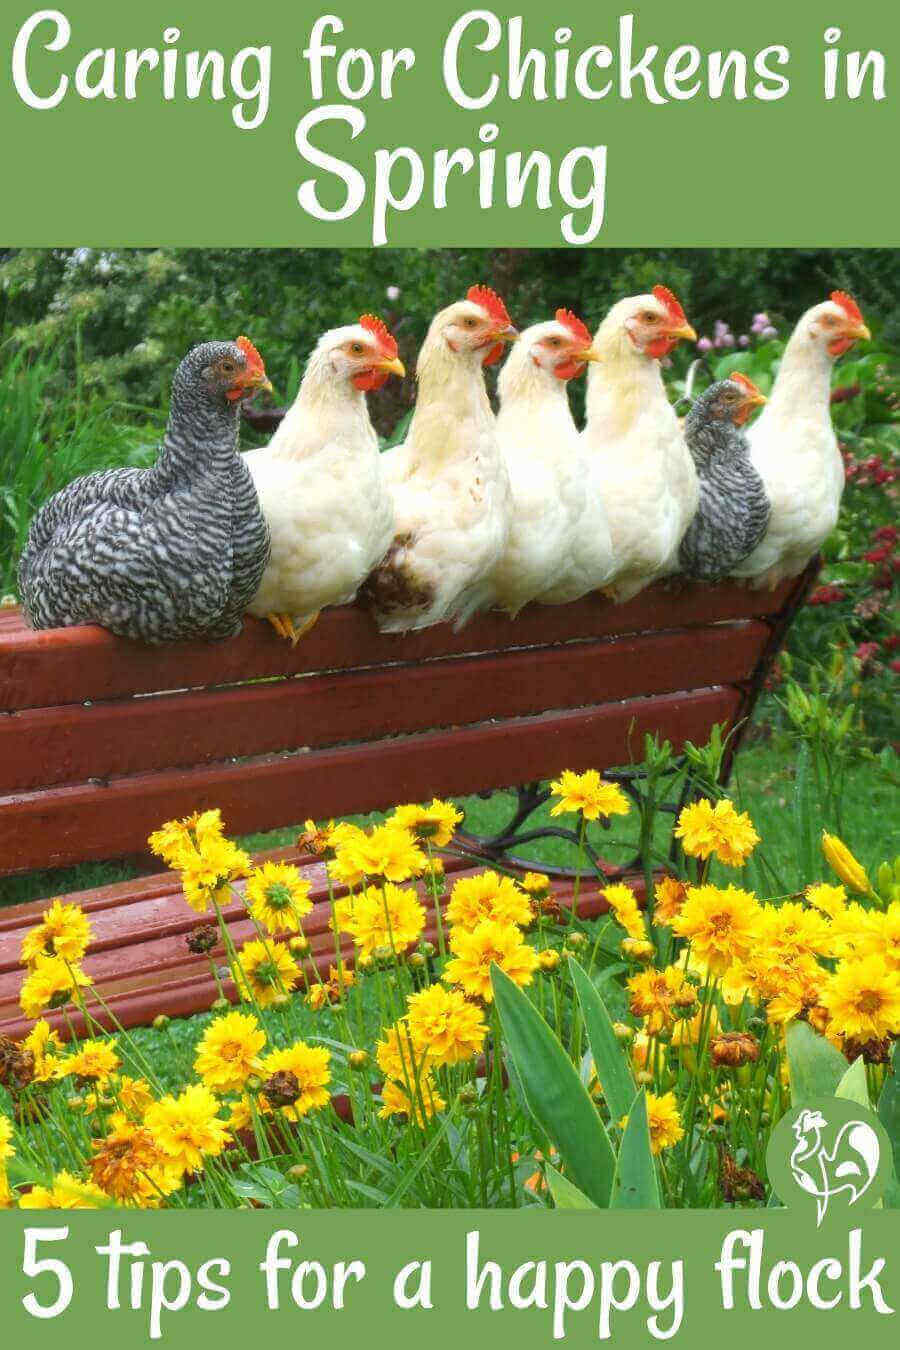 Seven hens sitting on bench in Spring.